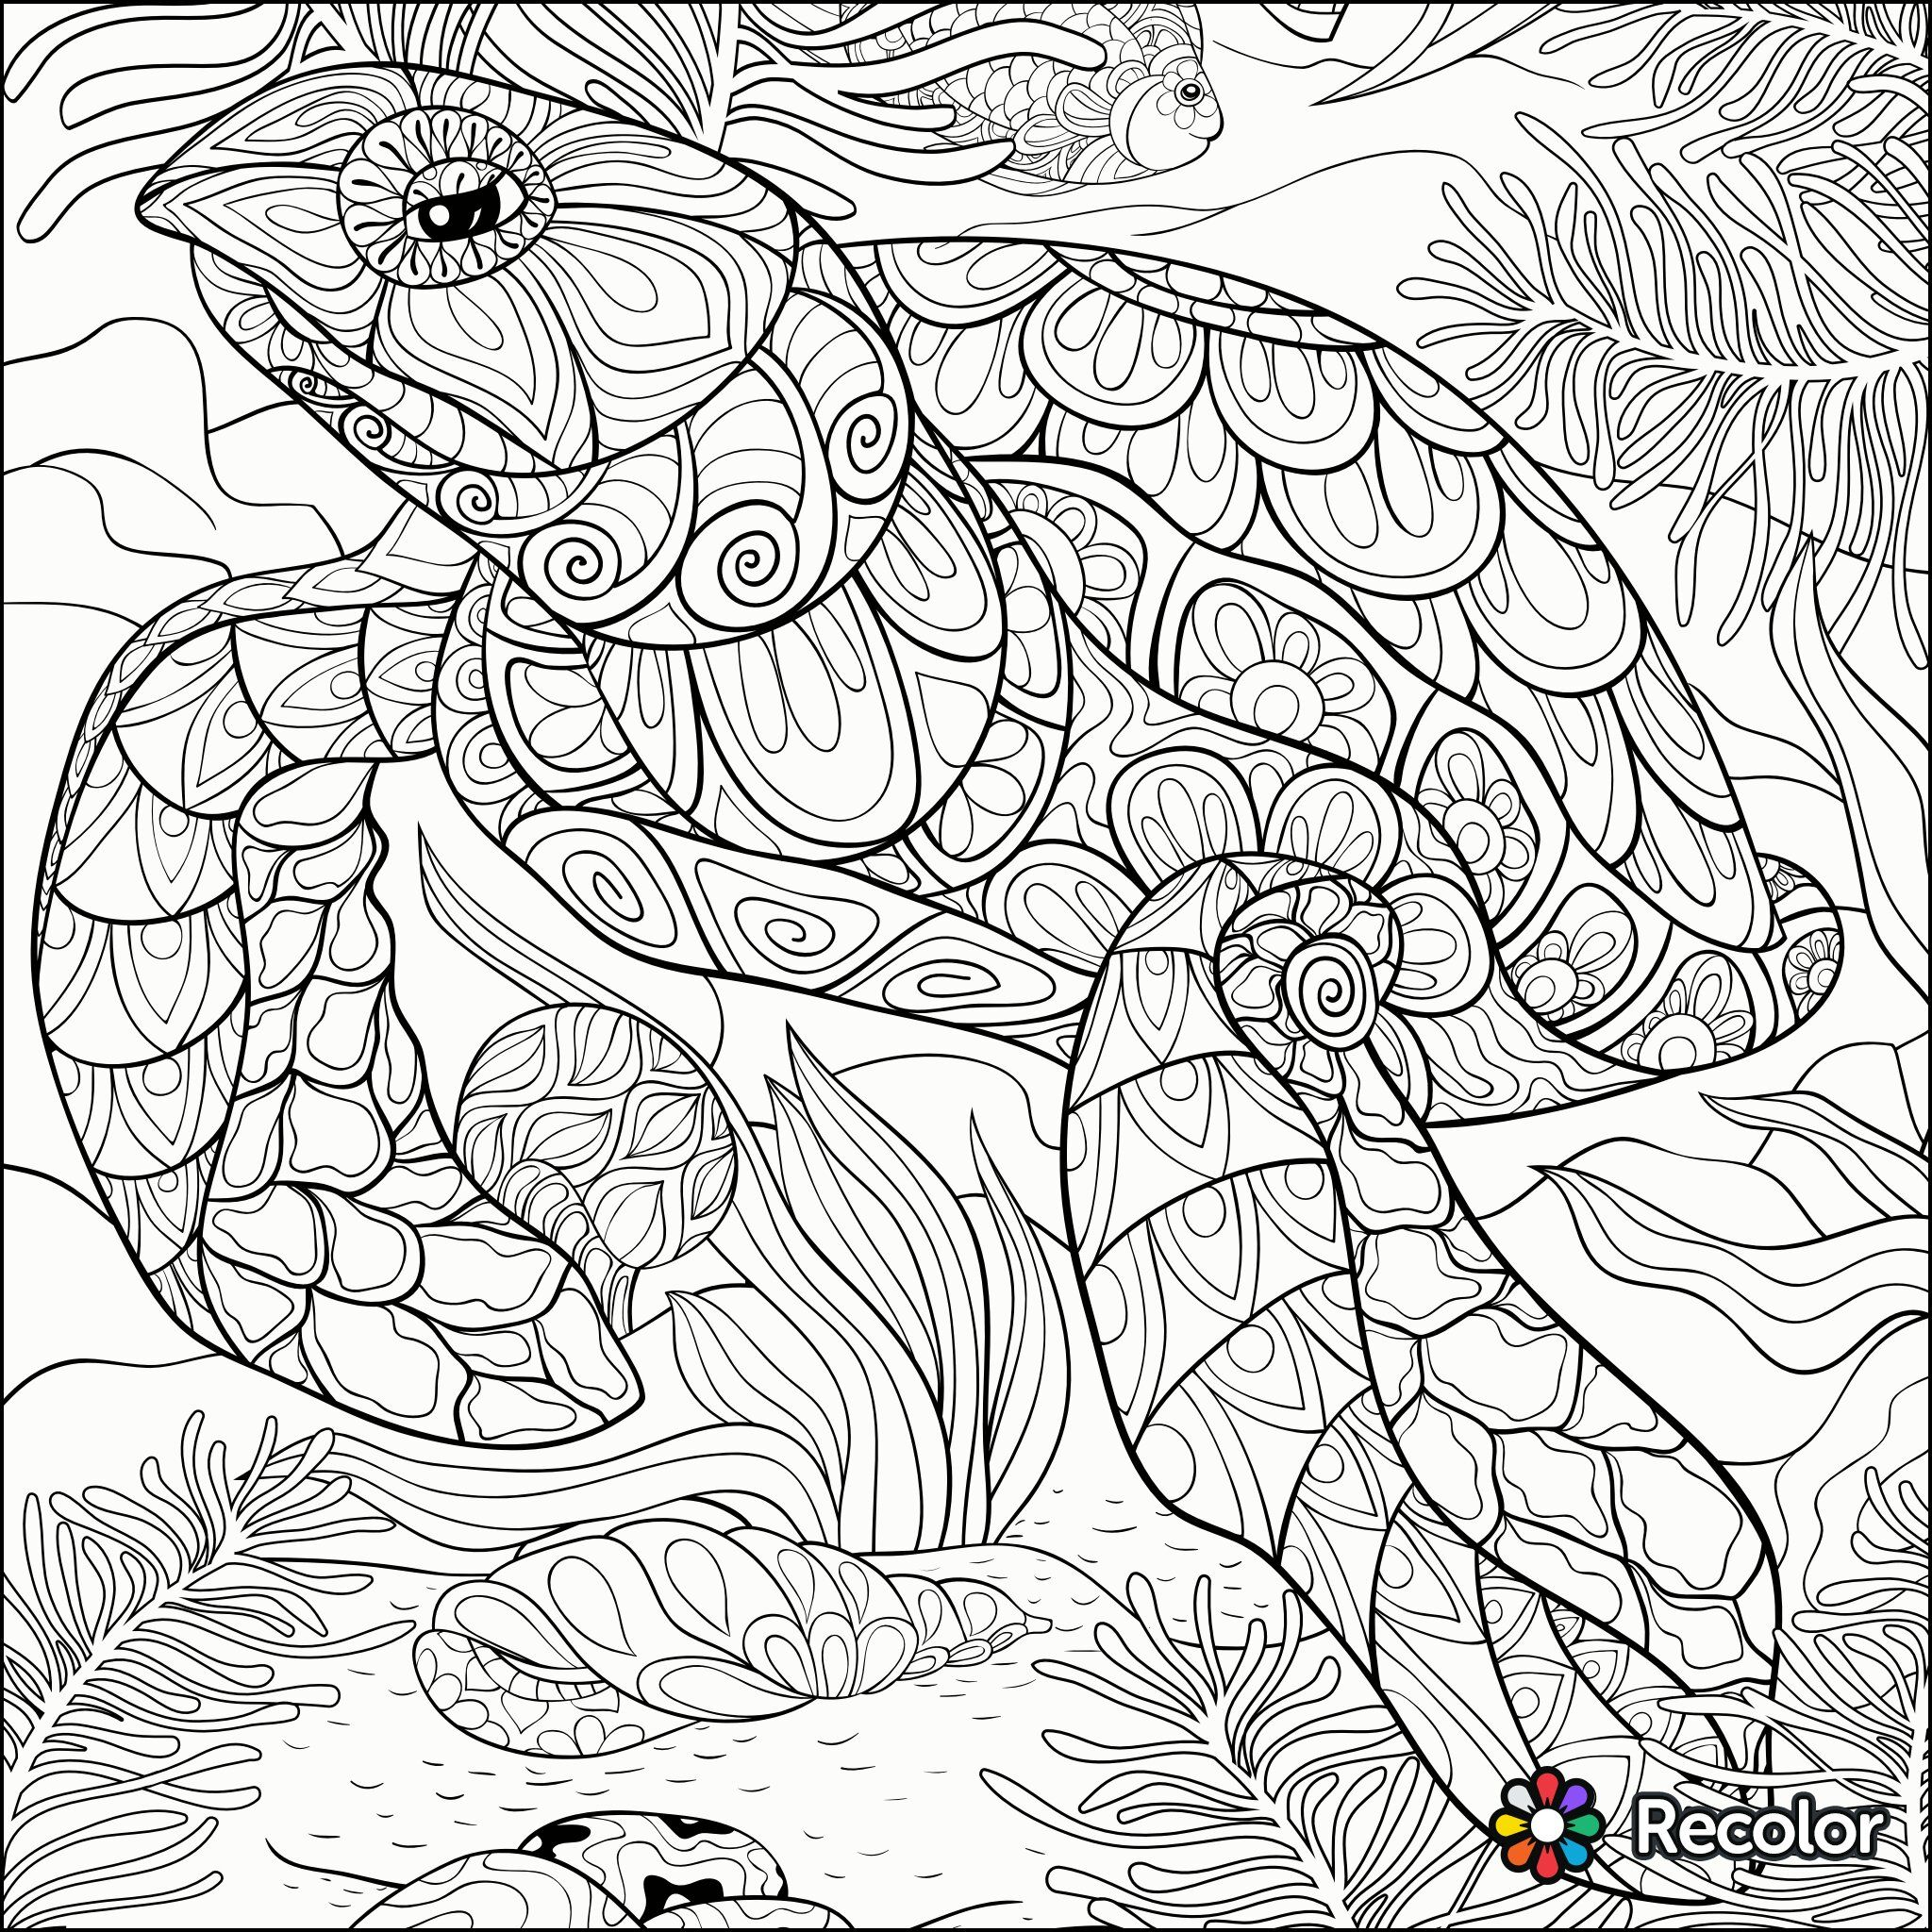 Turtle Coloring Page Recolor App Coloring Pages Coloring Pages